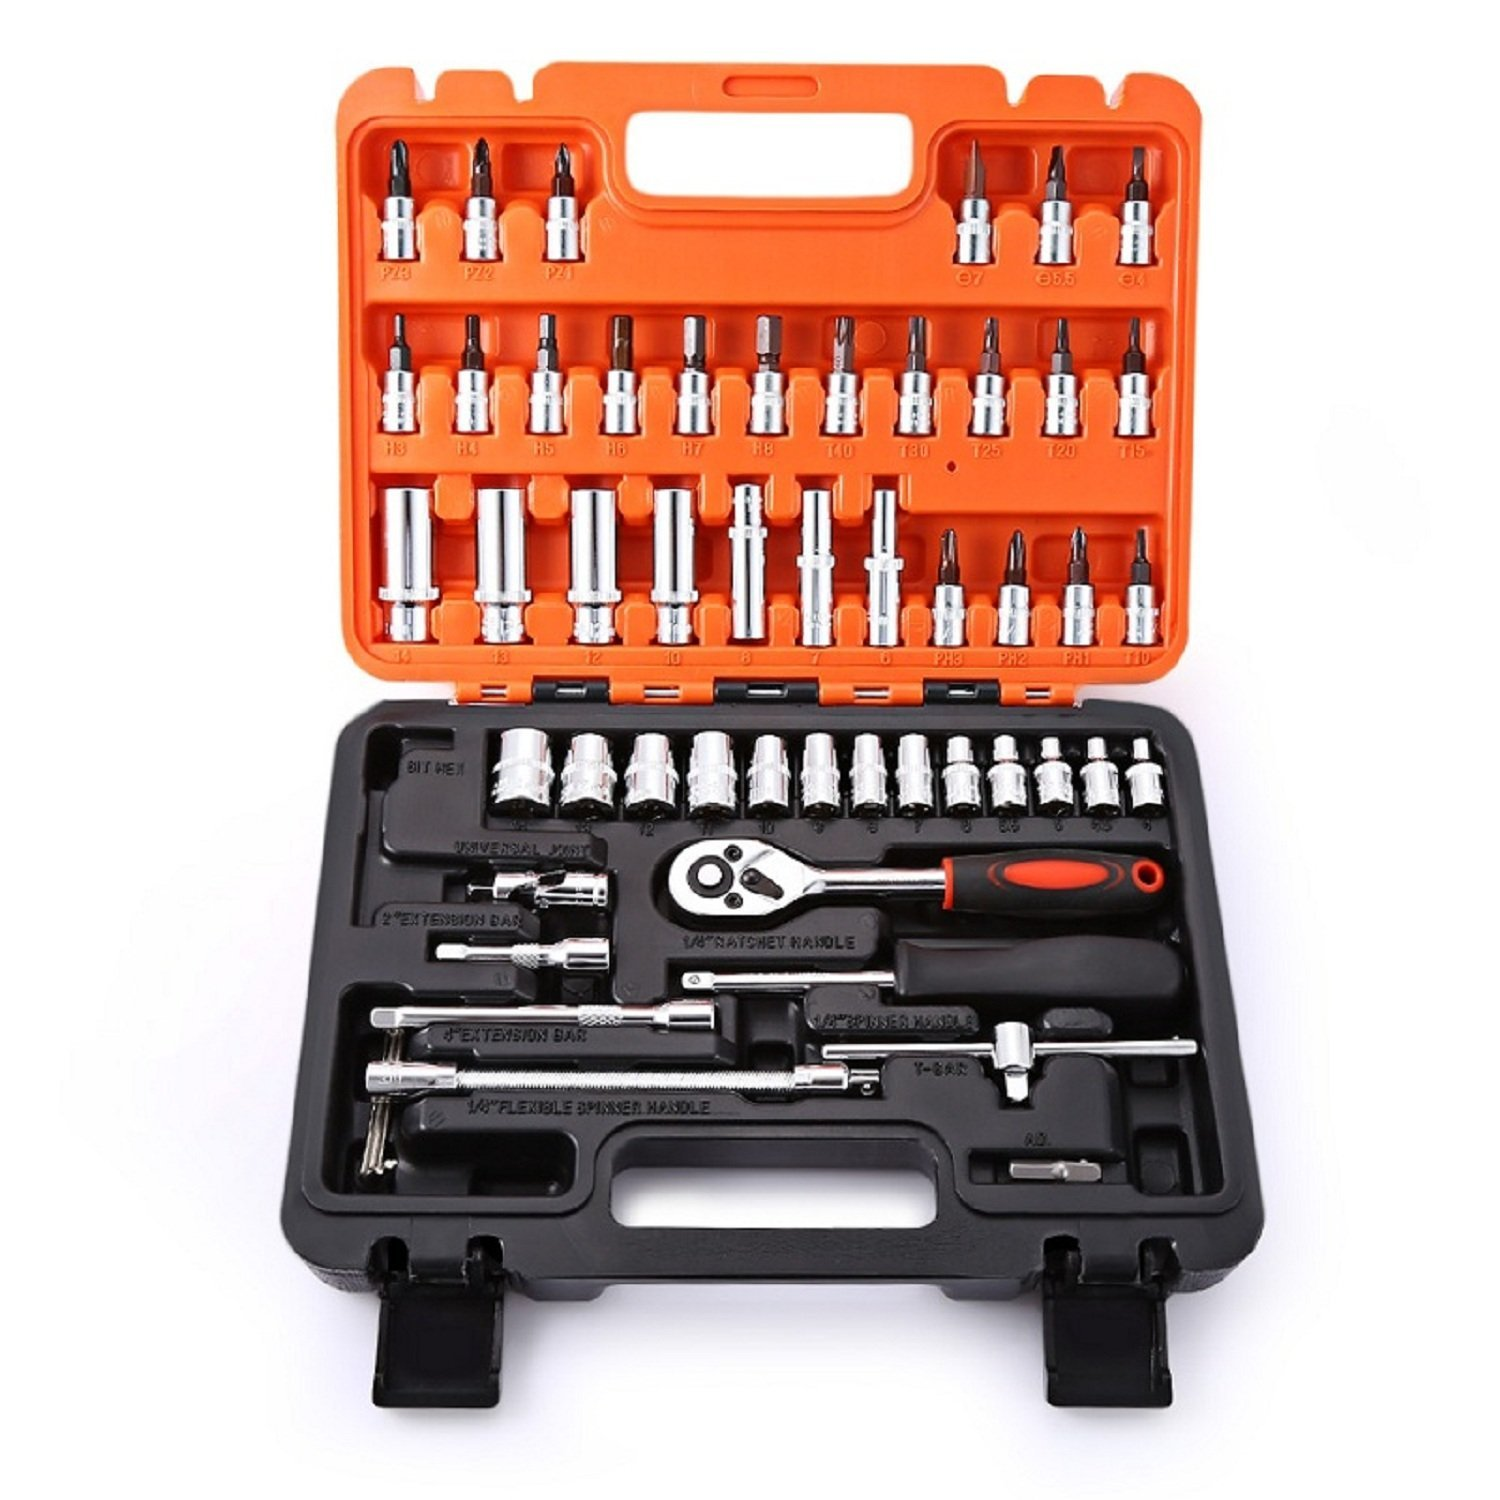 53pcs bicycle repair tools Drive Socket Set, 1/4-Inch Ratchet Wrench Drive Socket Set Socket Wrench Set bicycle accessories53pcs bicycle repair tools Drive Socket Set, 1/4-Inch Ratchet Wrench Drive Socket Set Socket Wrench Set bicycle accessories